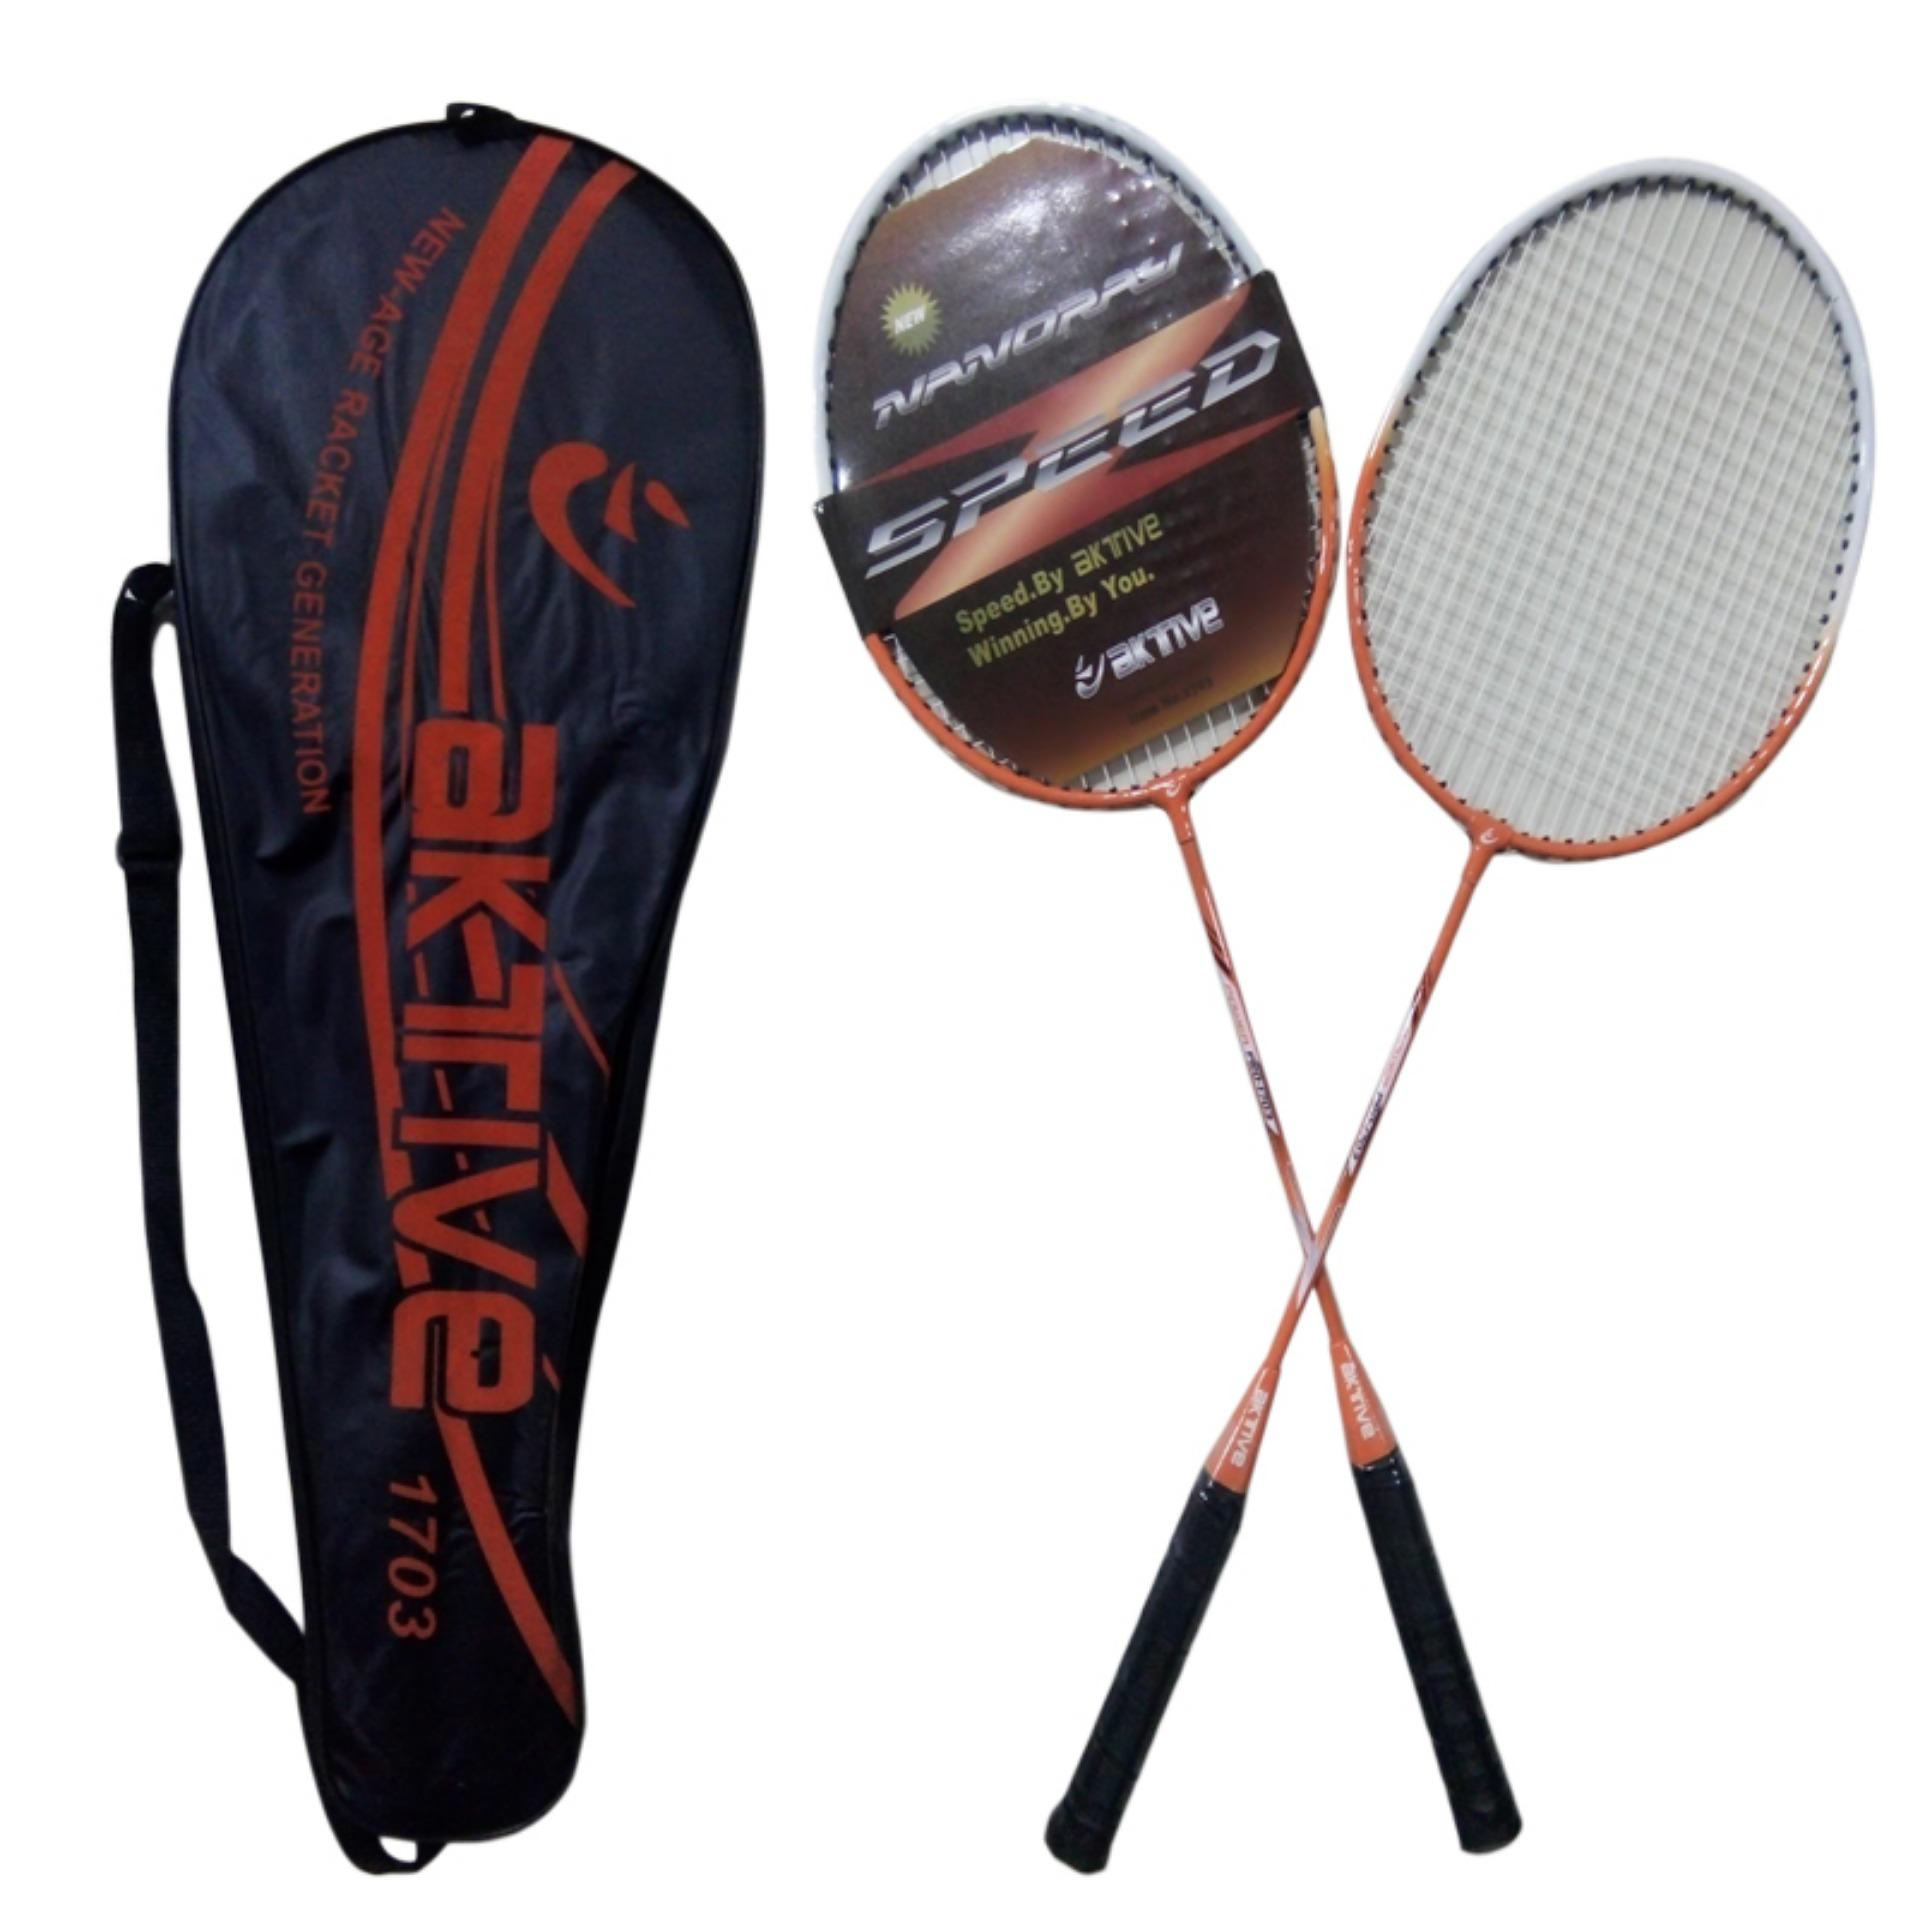 64cd227ca Badminton Racquets for sale - Racquets for Badminton Online Deals ...